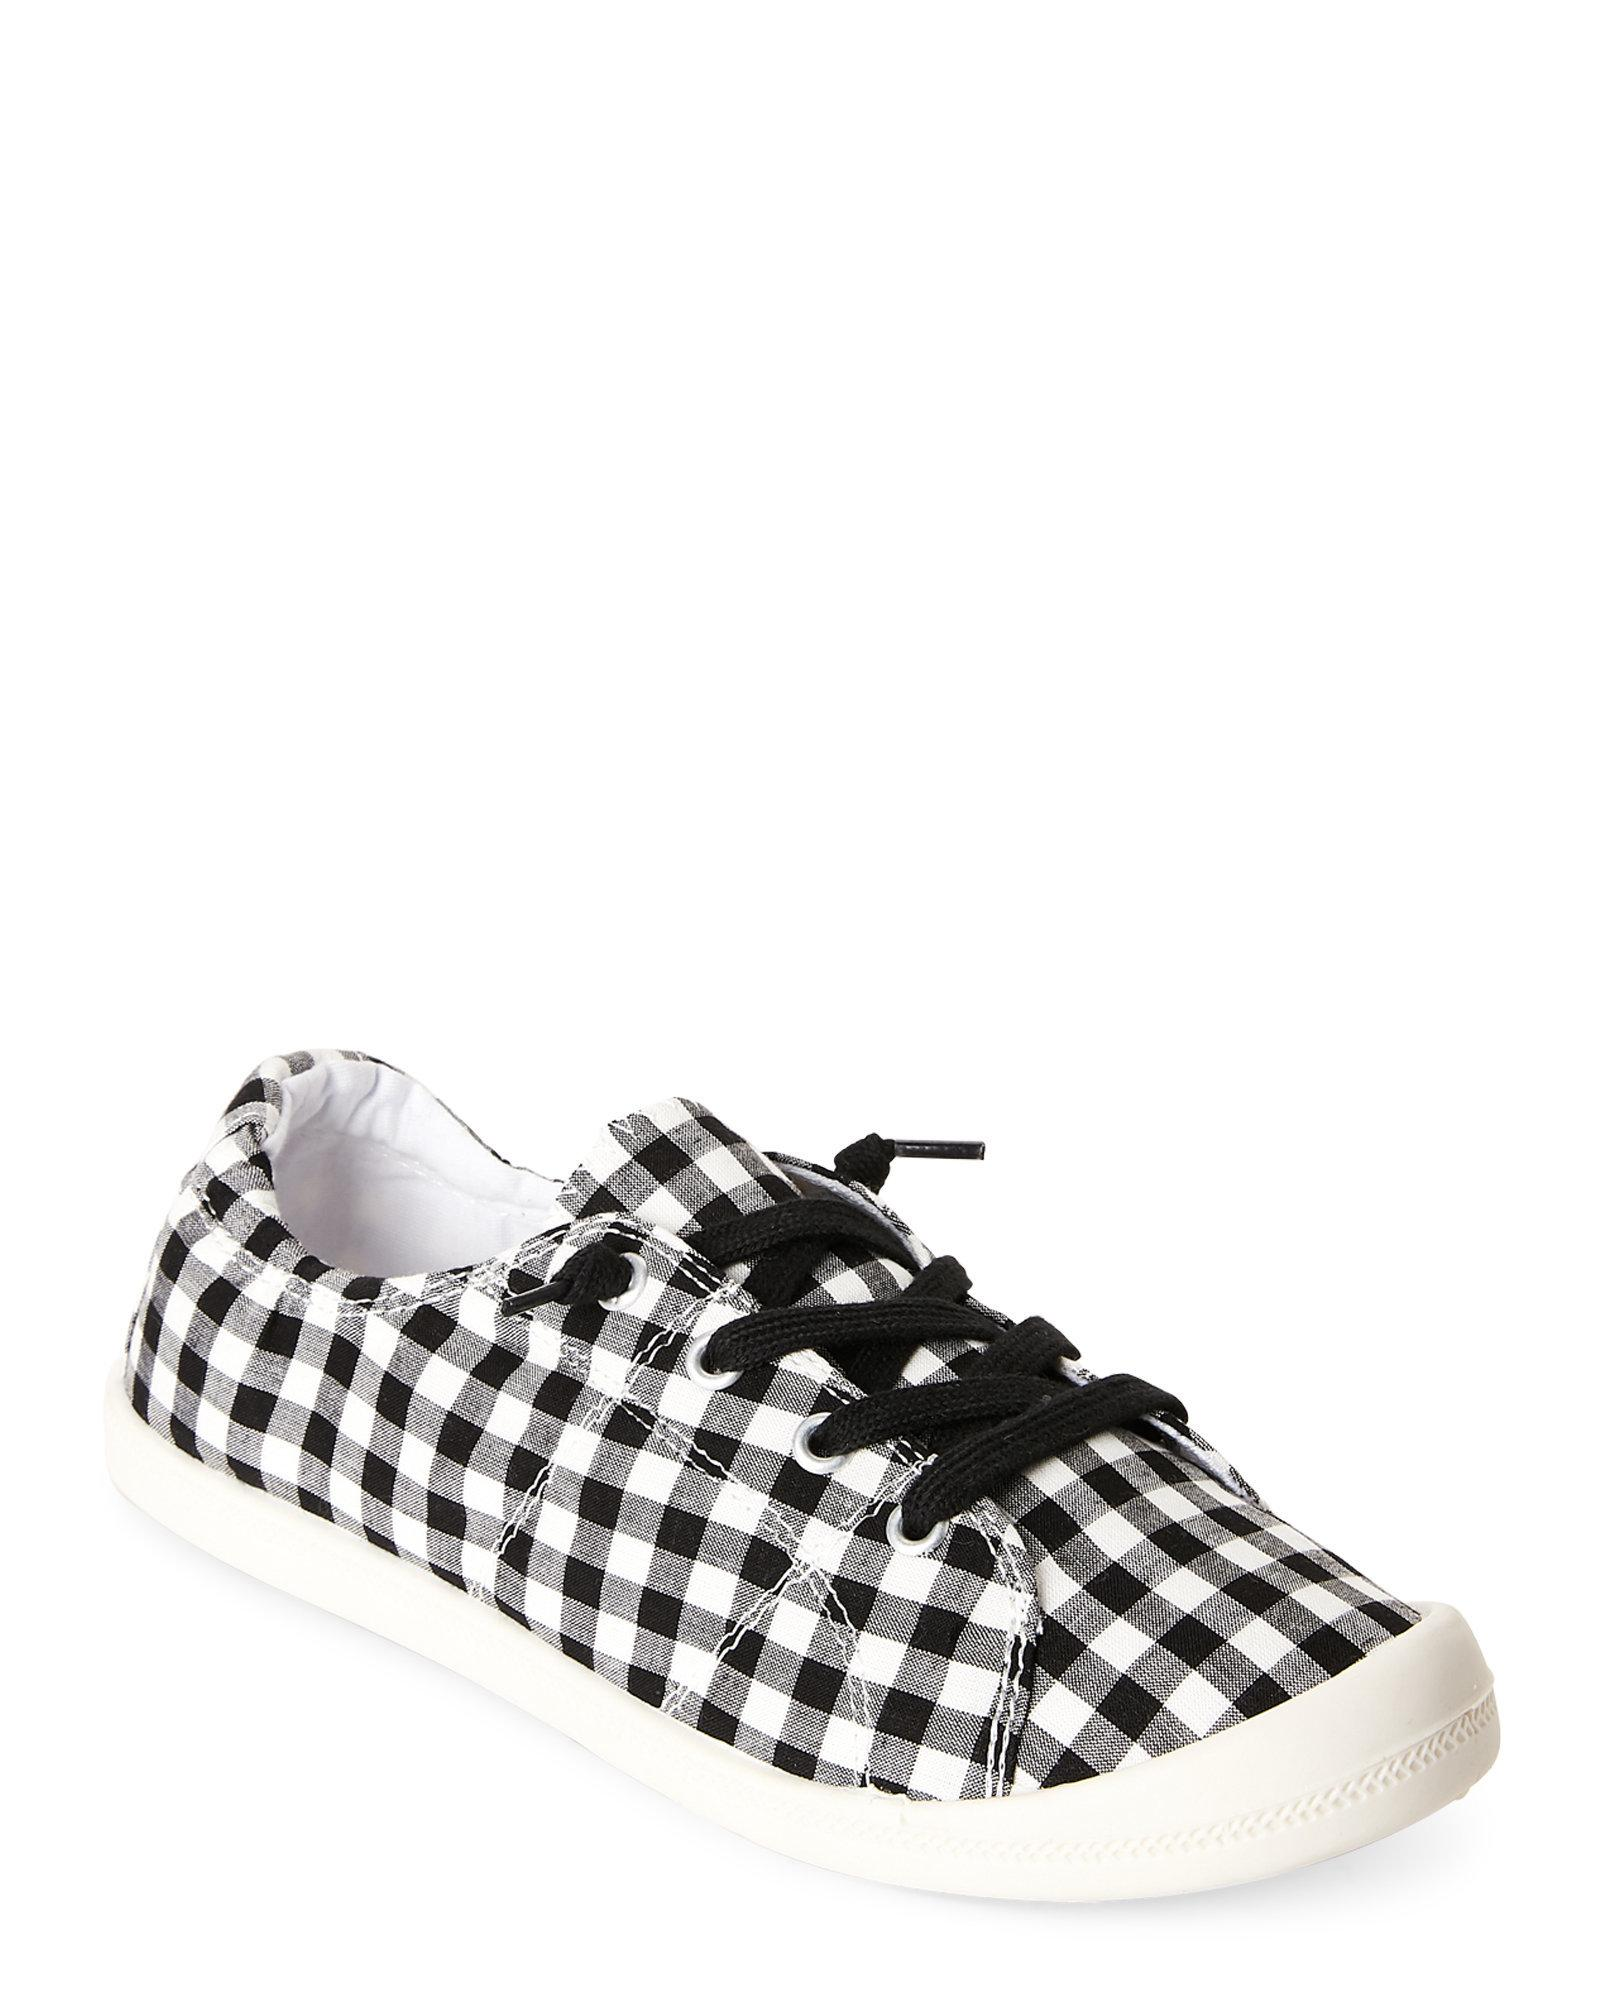 1b8a023a892 Lyst - Madden Girl Black   White Bailey Gingham Slip-on Sneakers in ...